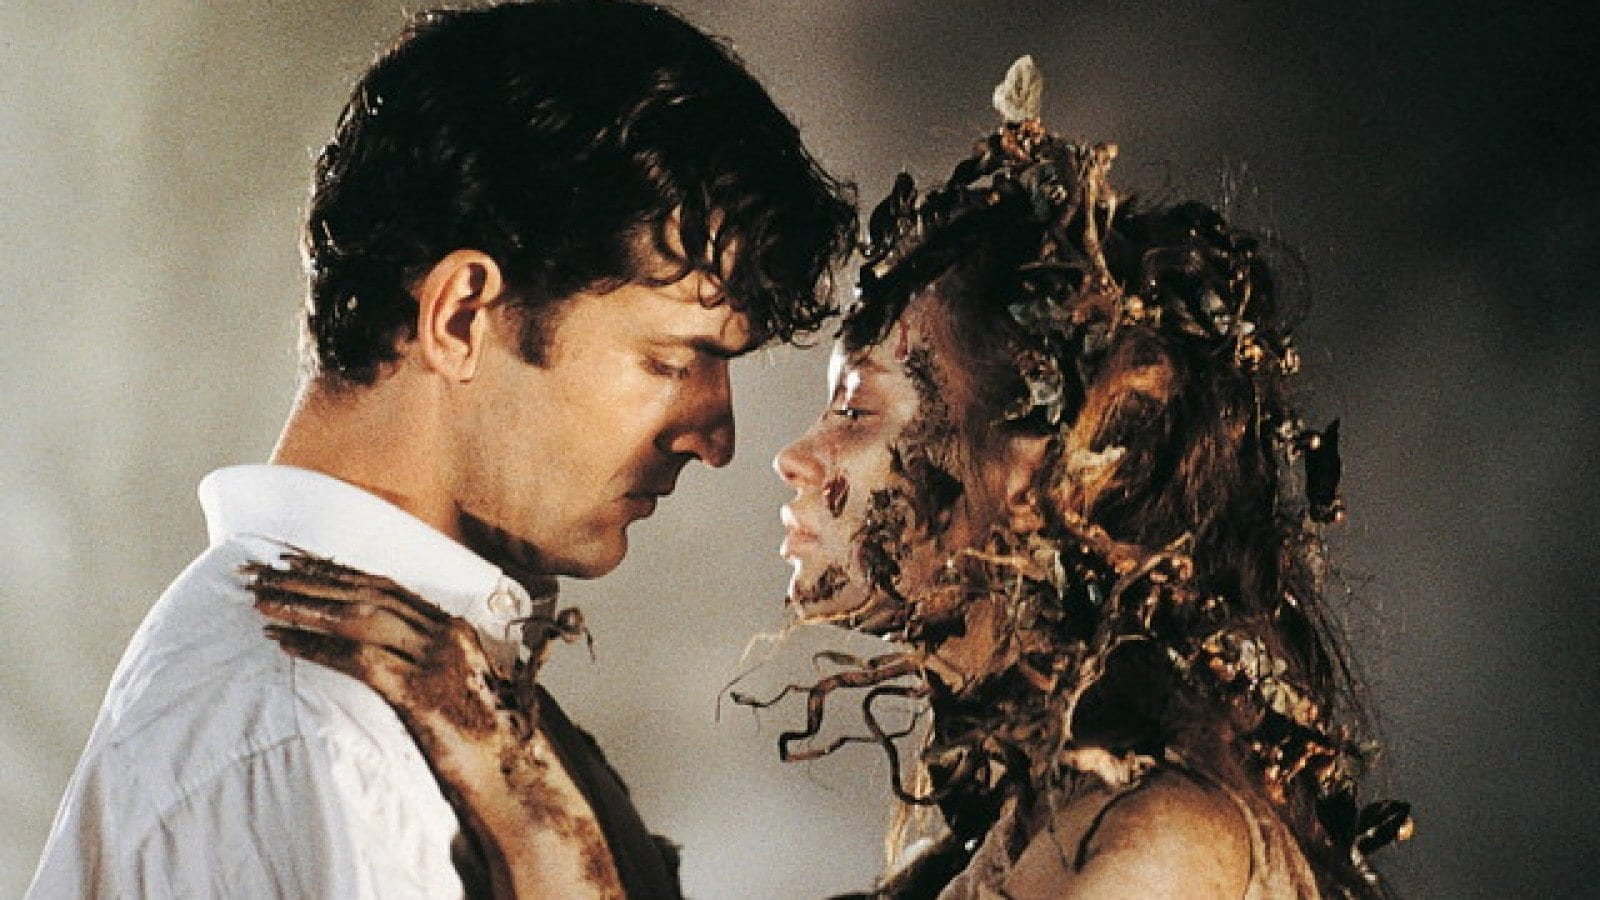 Cemetery Man (Rupert Everett) makes love to the reanimated corpse of a woman who has recently come back from the dead.